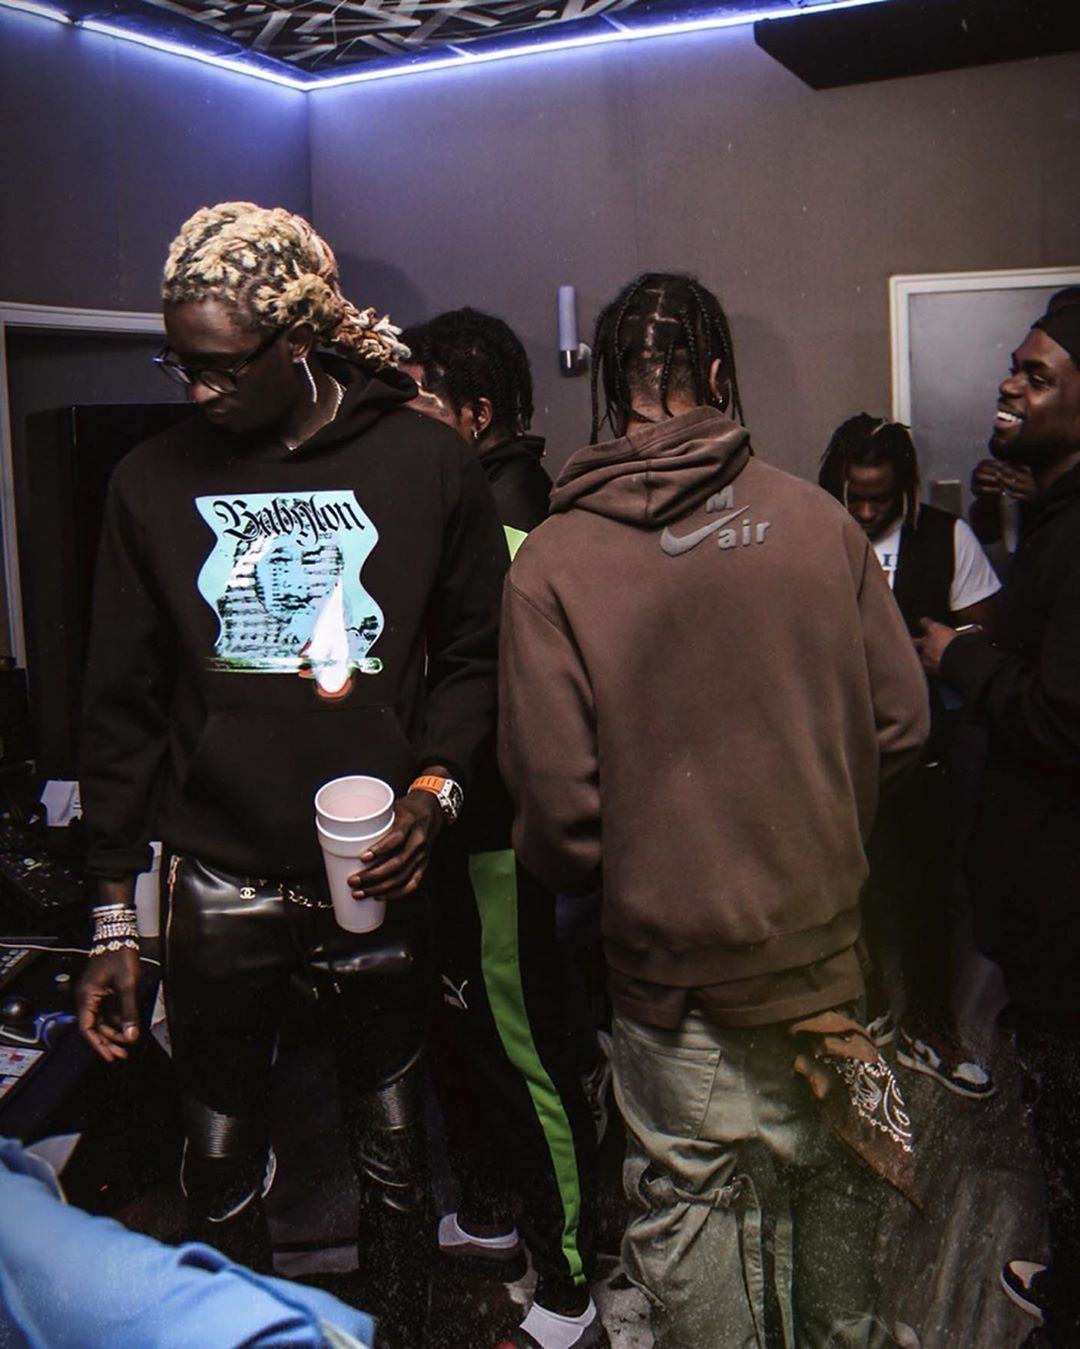 Pin By Ali Lou On Rappers In 2020 Travis Scott Fashion Young Thug Hip Hop Fashion